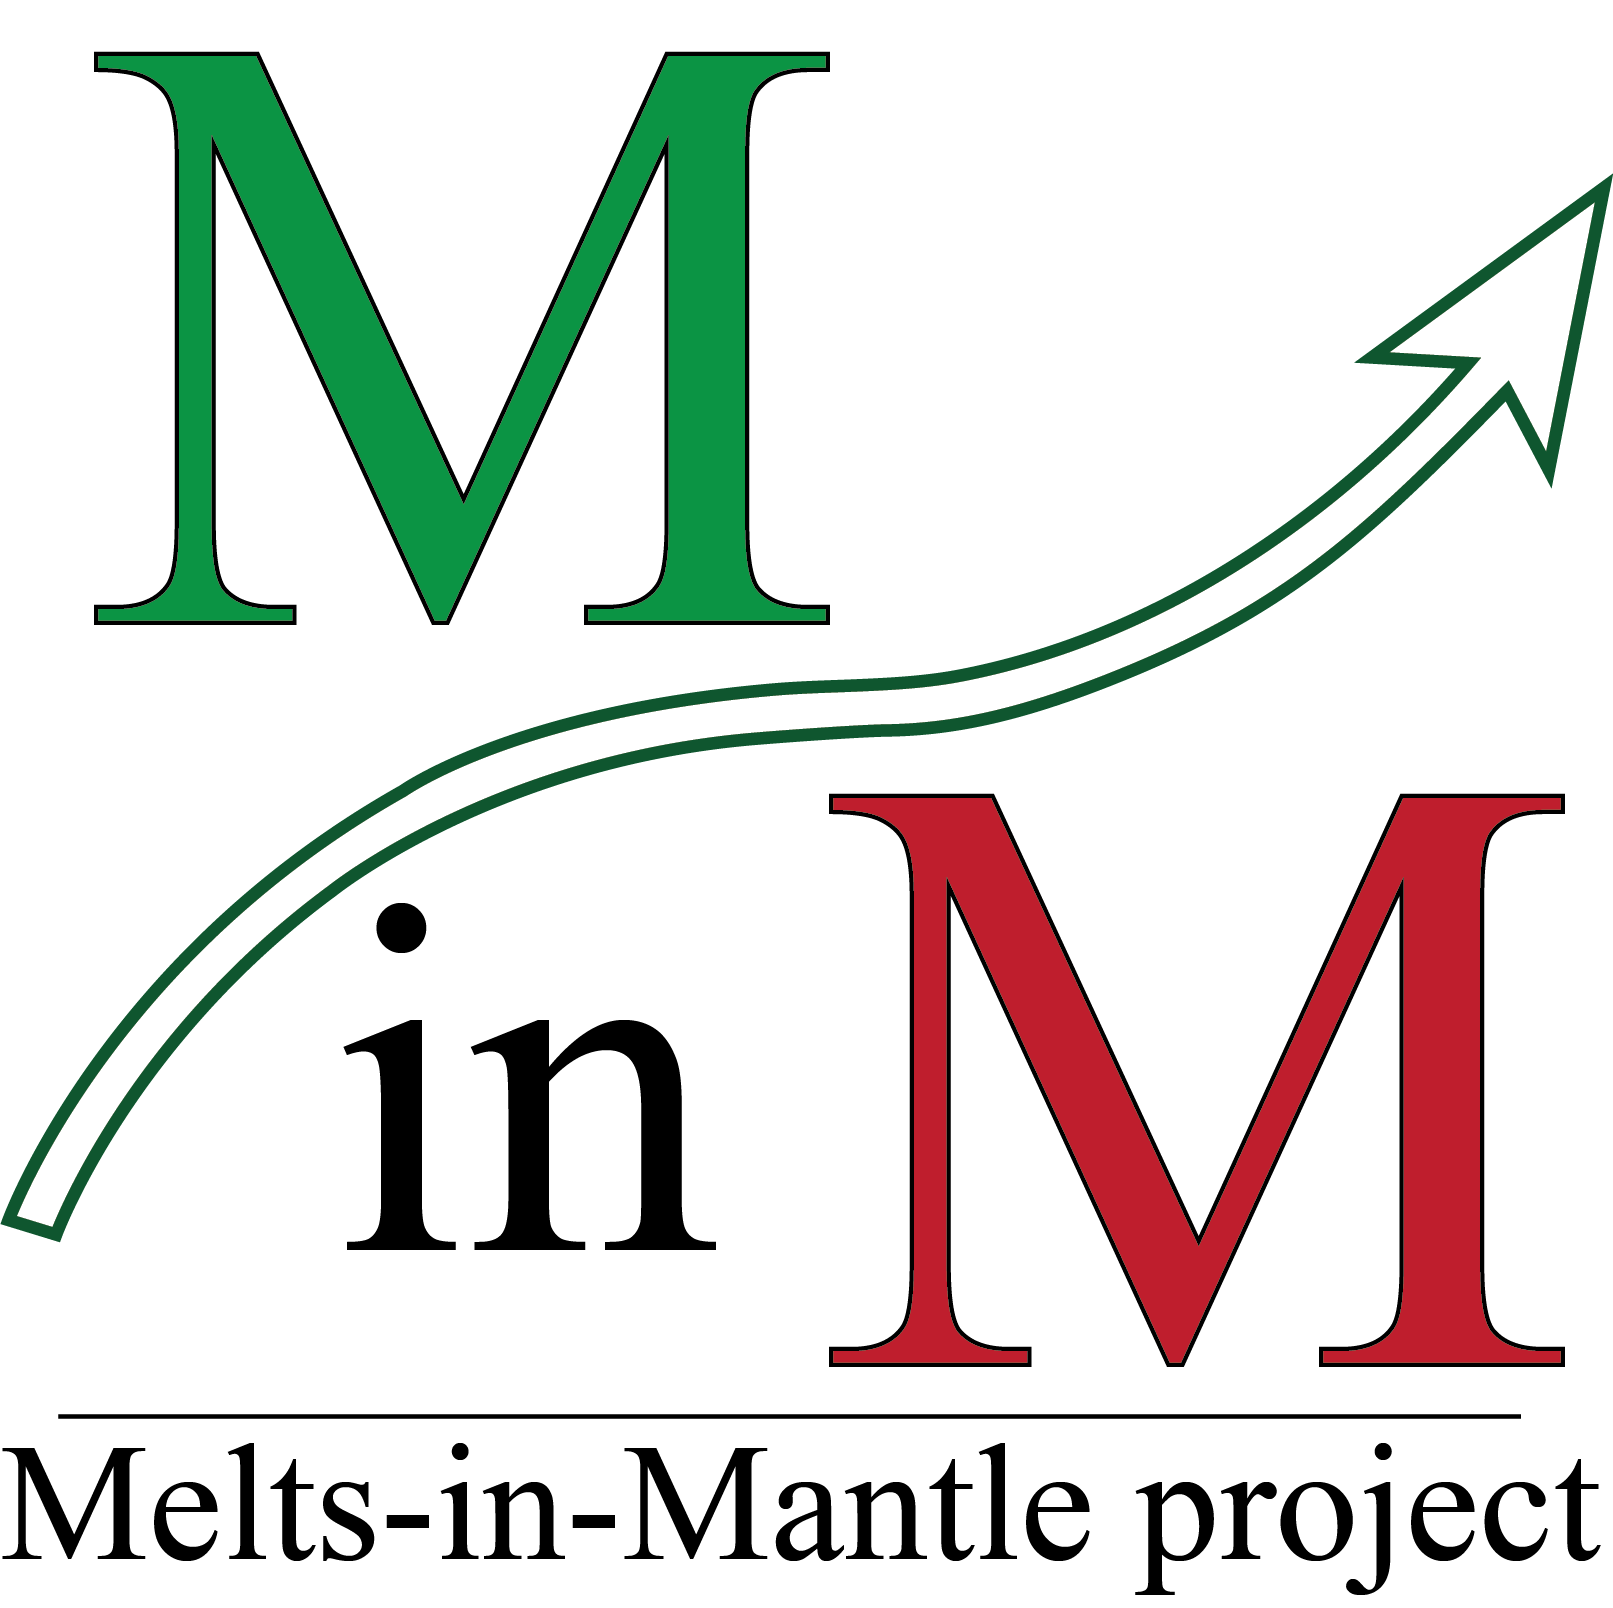 Melt-rock reaction and melt migration in the MORB mantle